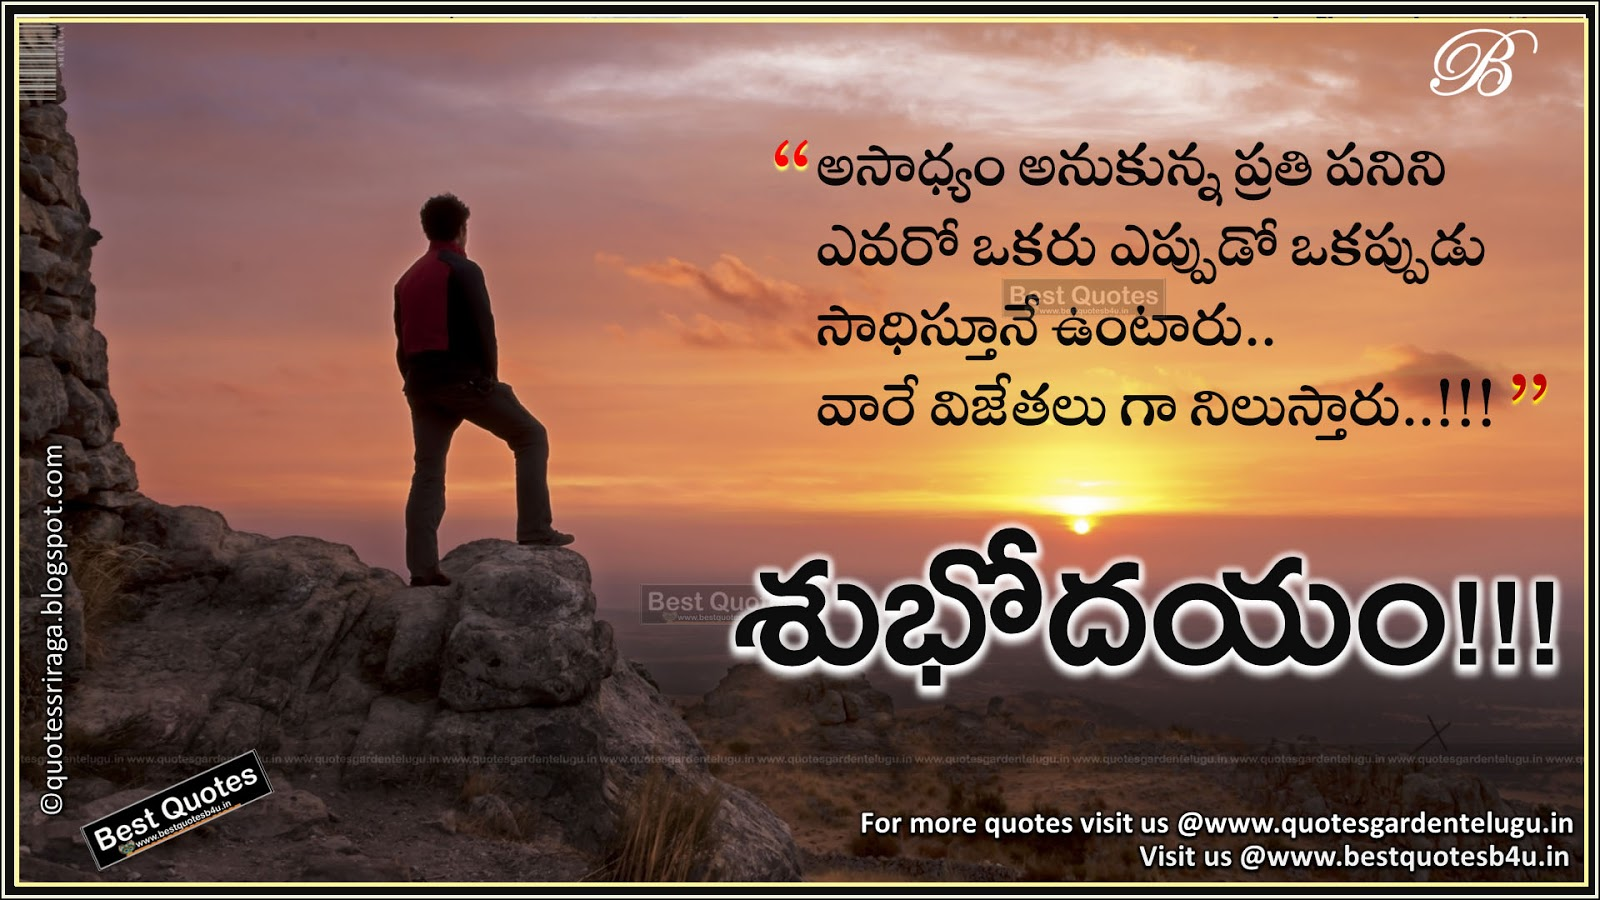 Good Morning Inspirational Quotes Top Telugu Motivational Good Morning Quotes  Like Share Follow